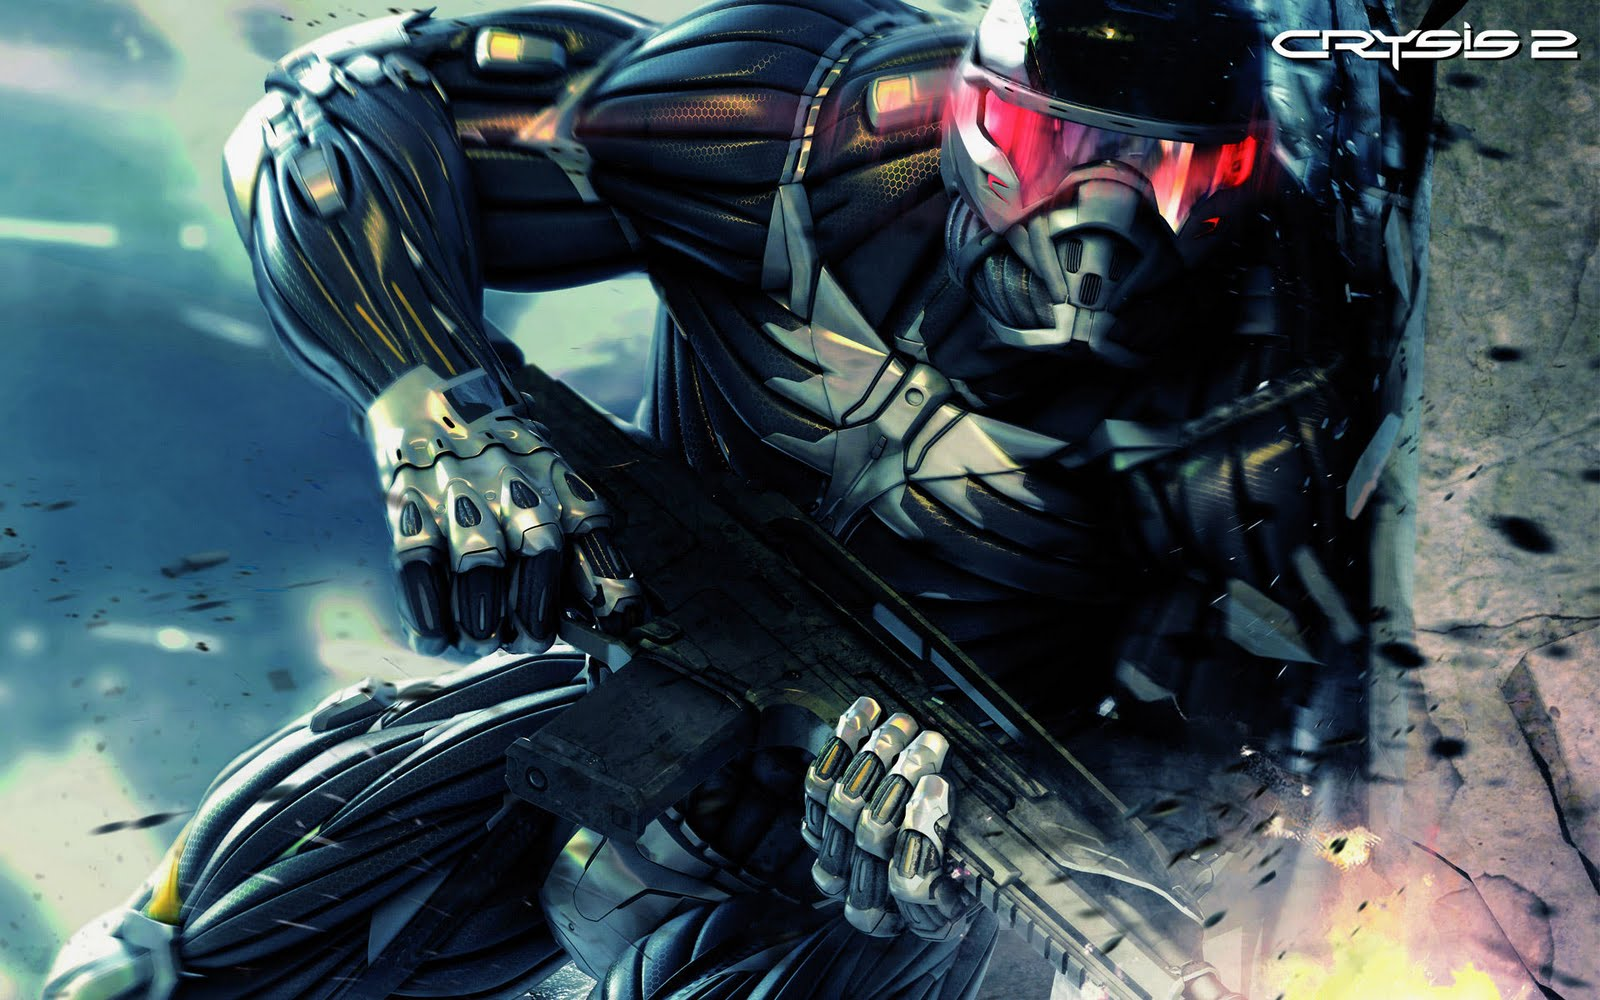 http://1.bp.blogspot.com/_V6TVDECge74/TGe_a0IU_oI/AAAAAAAABCc/OBhdOA7_8cE/s1600/photo-crysis-2+PS3+Xbox+live+wallpaper+HD.jpg